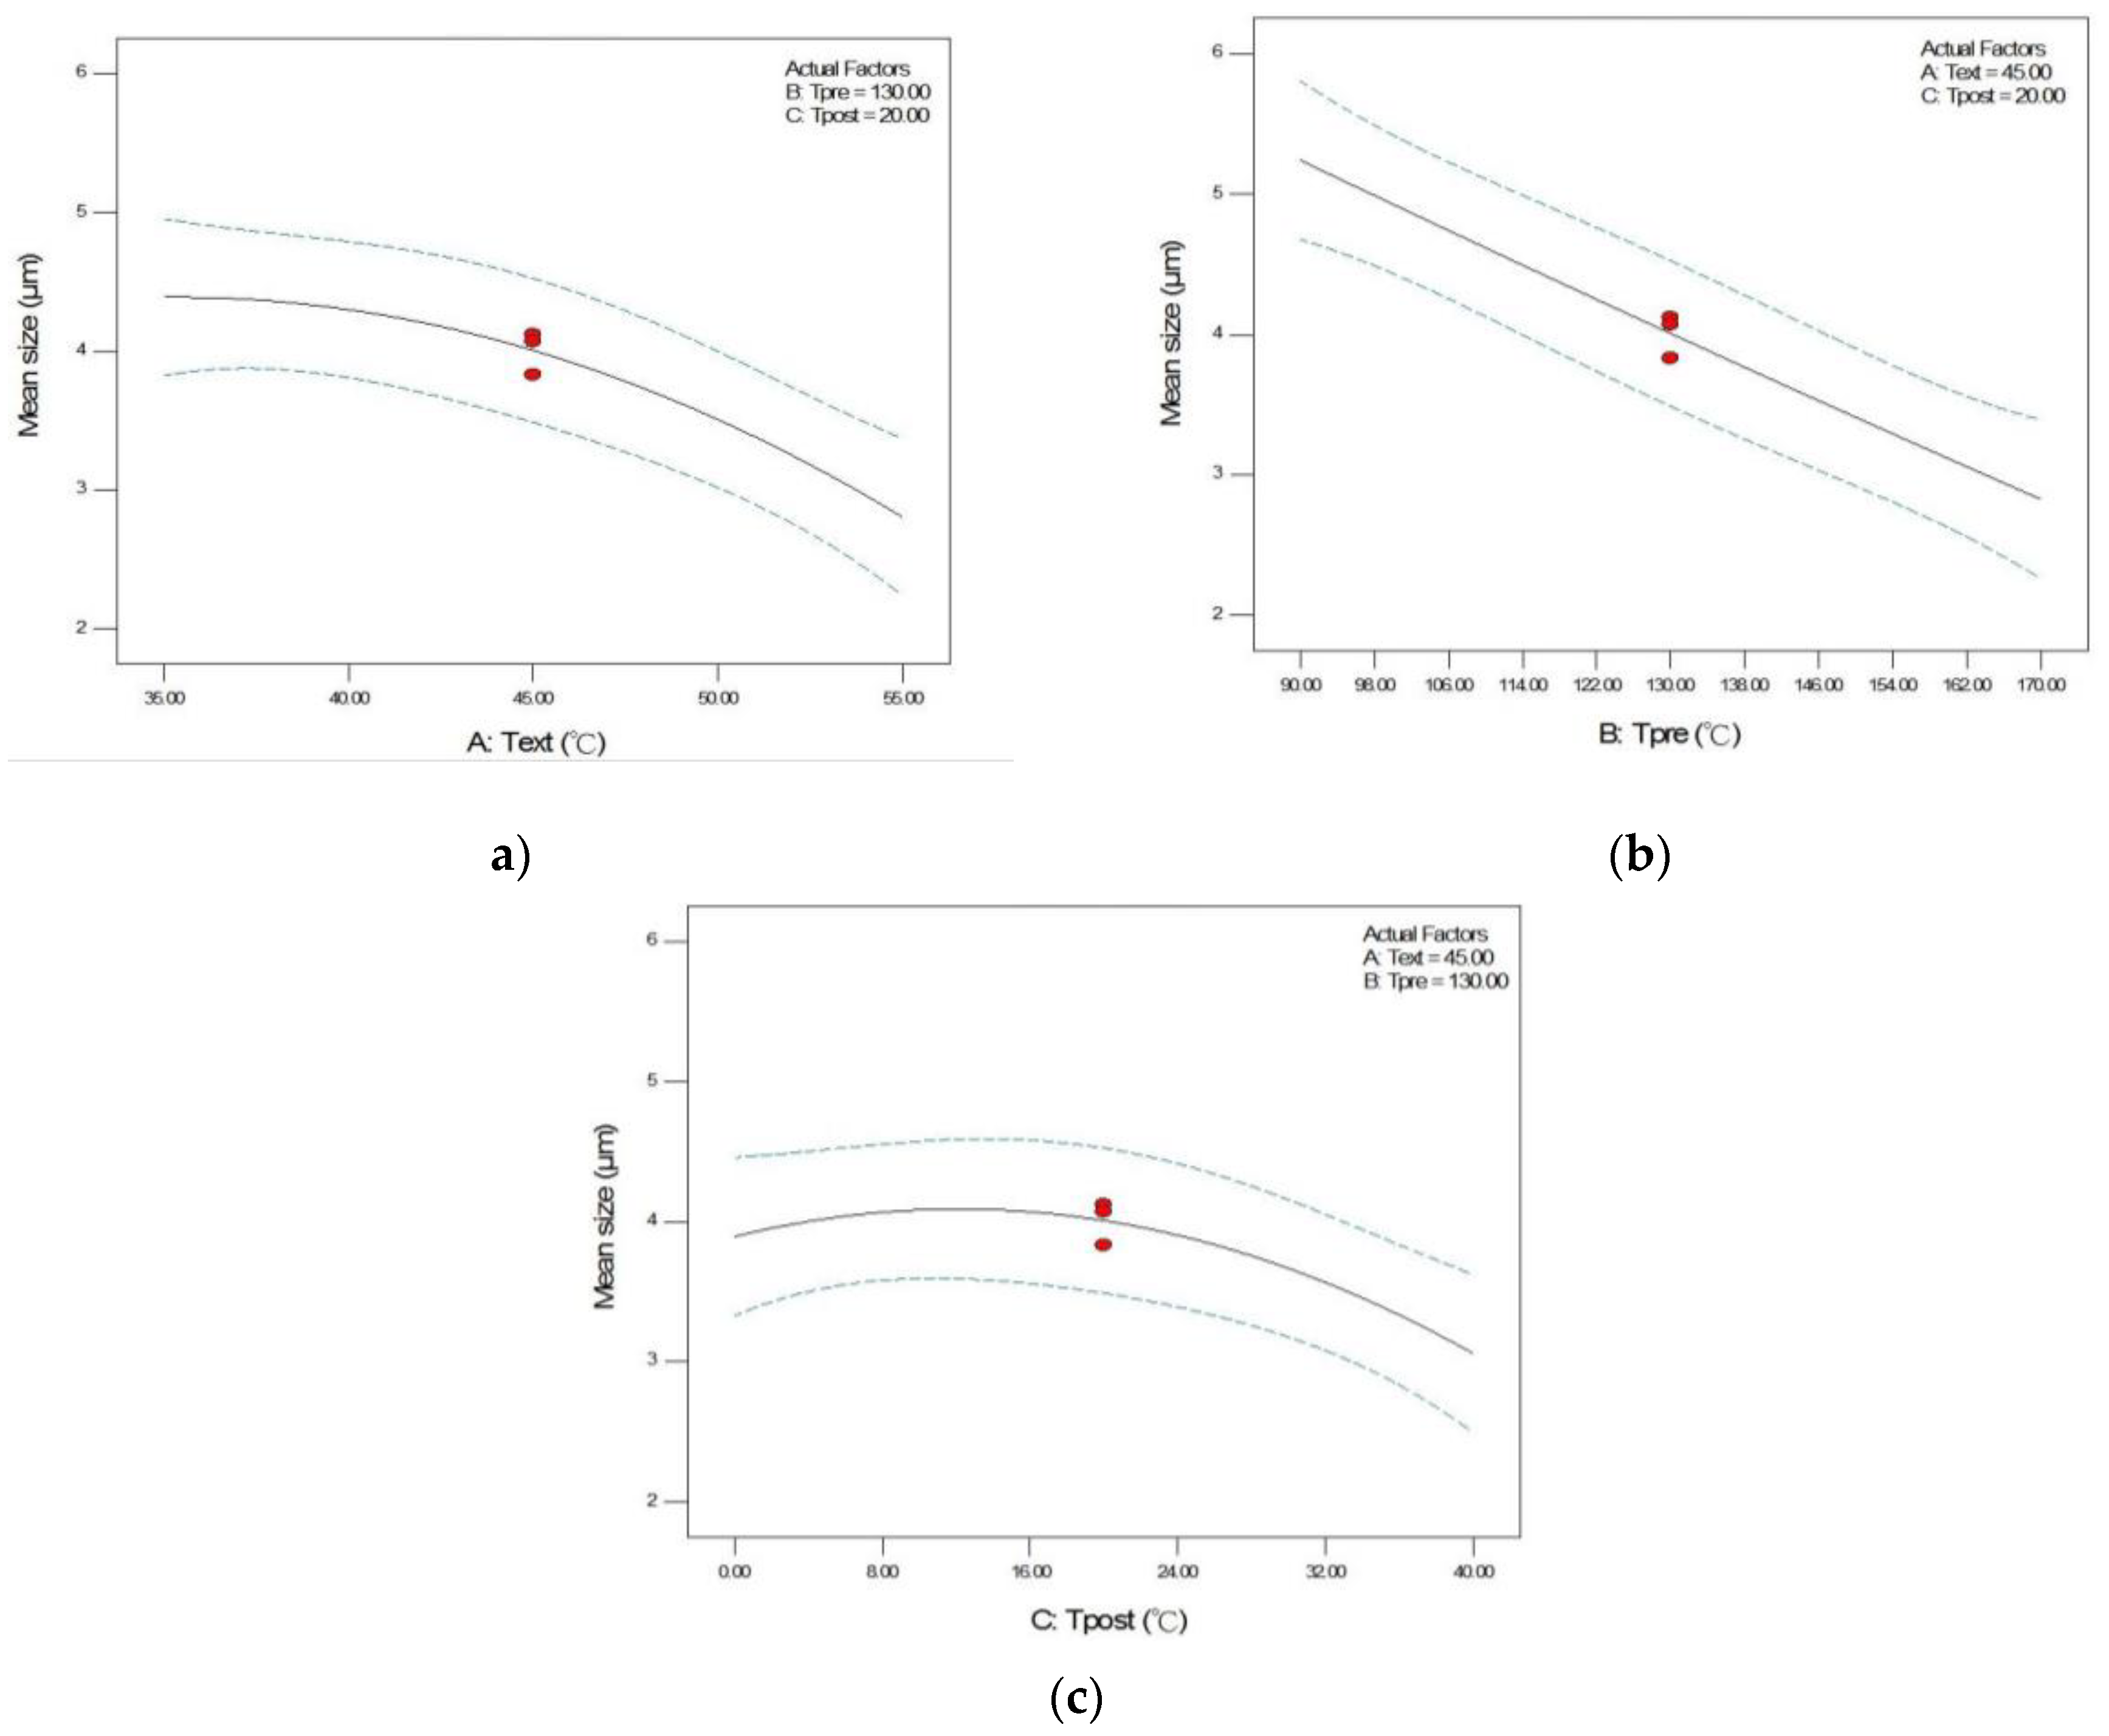 Pharmaceutics Free Full Text Application Of Box Behnken Design To Investigate The Effect Of Process Parameters On The Microparticle Production Of Ethenzamide Through The Rapid Expansion Of The Supercritical Solutions Process